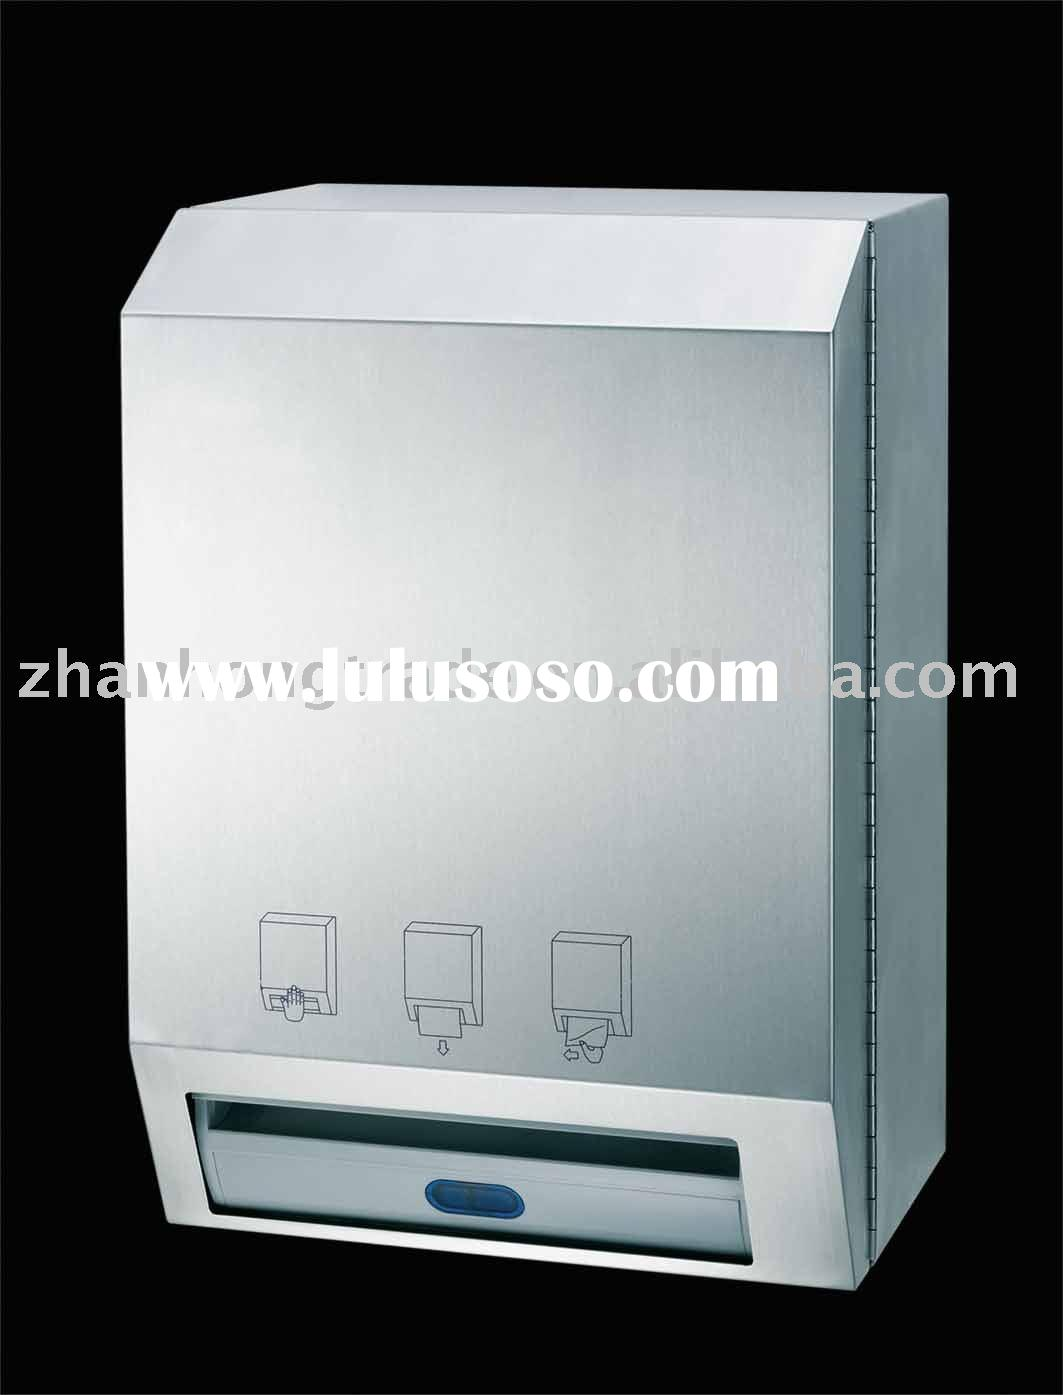 Stainless steel auto paper towel dispenser